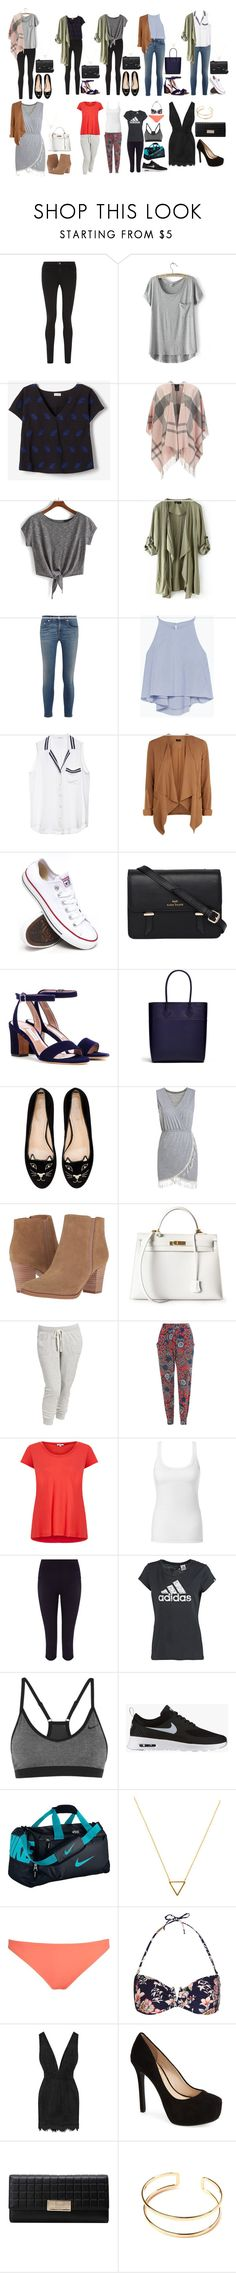 """Free Time"" by strawberryfelton on Polyvore featuring Mode, Frame, LULUS, SUNO New York, Barbour, rag & bone, Zara, Equipment, New Look und Converse"